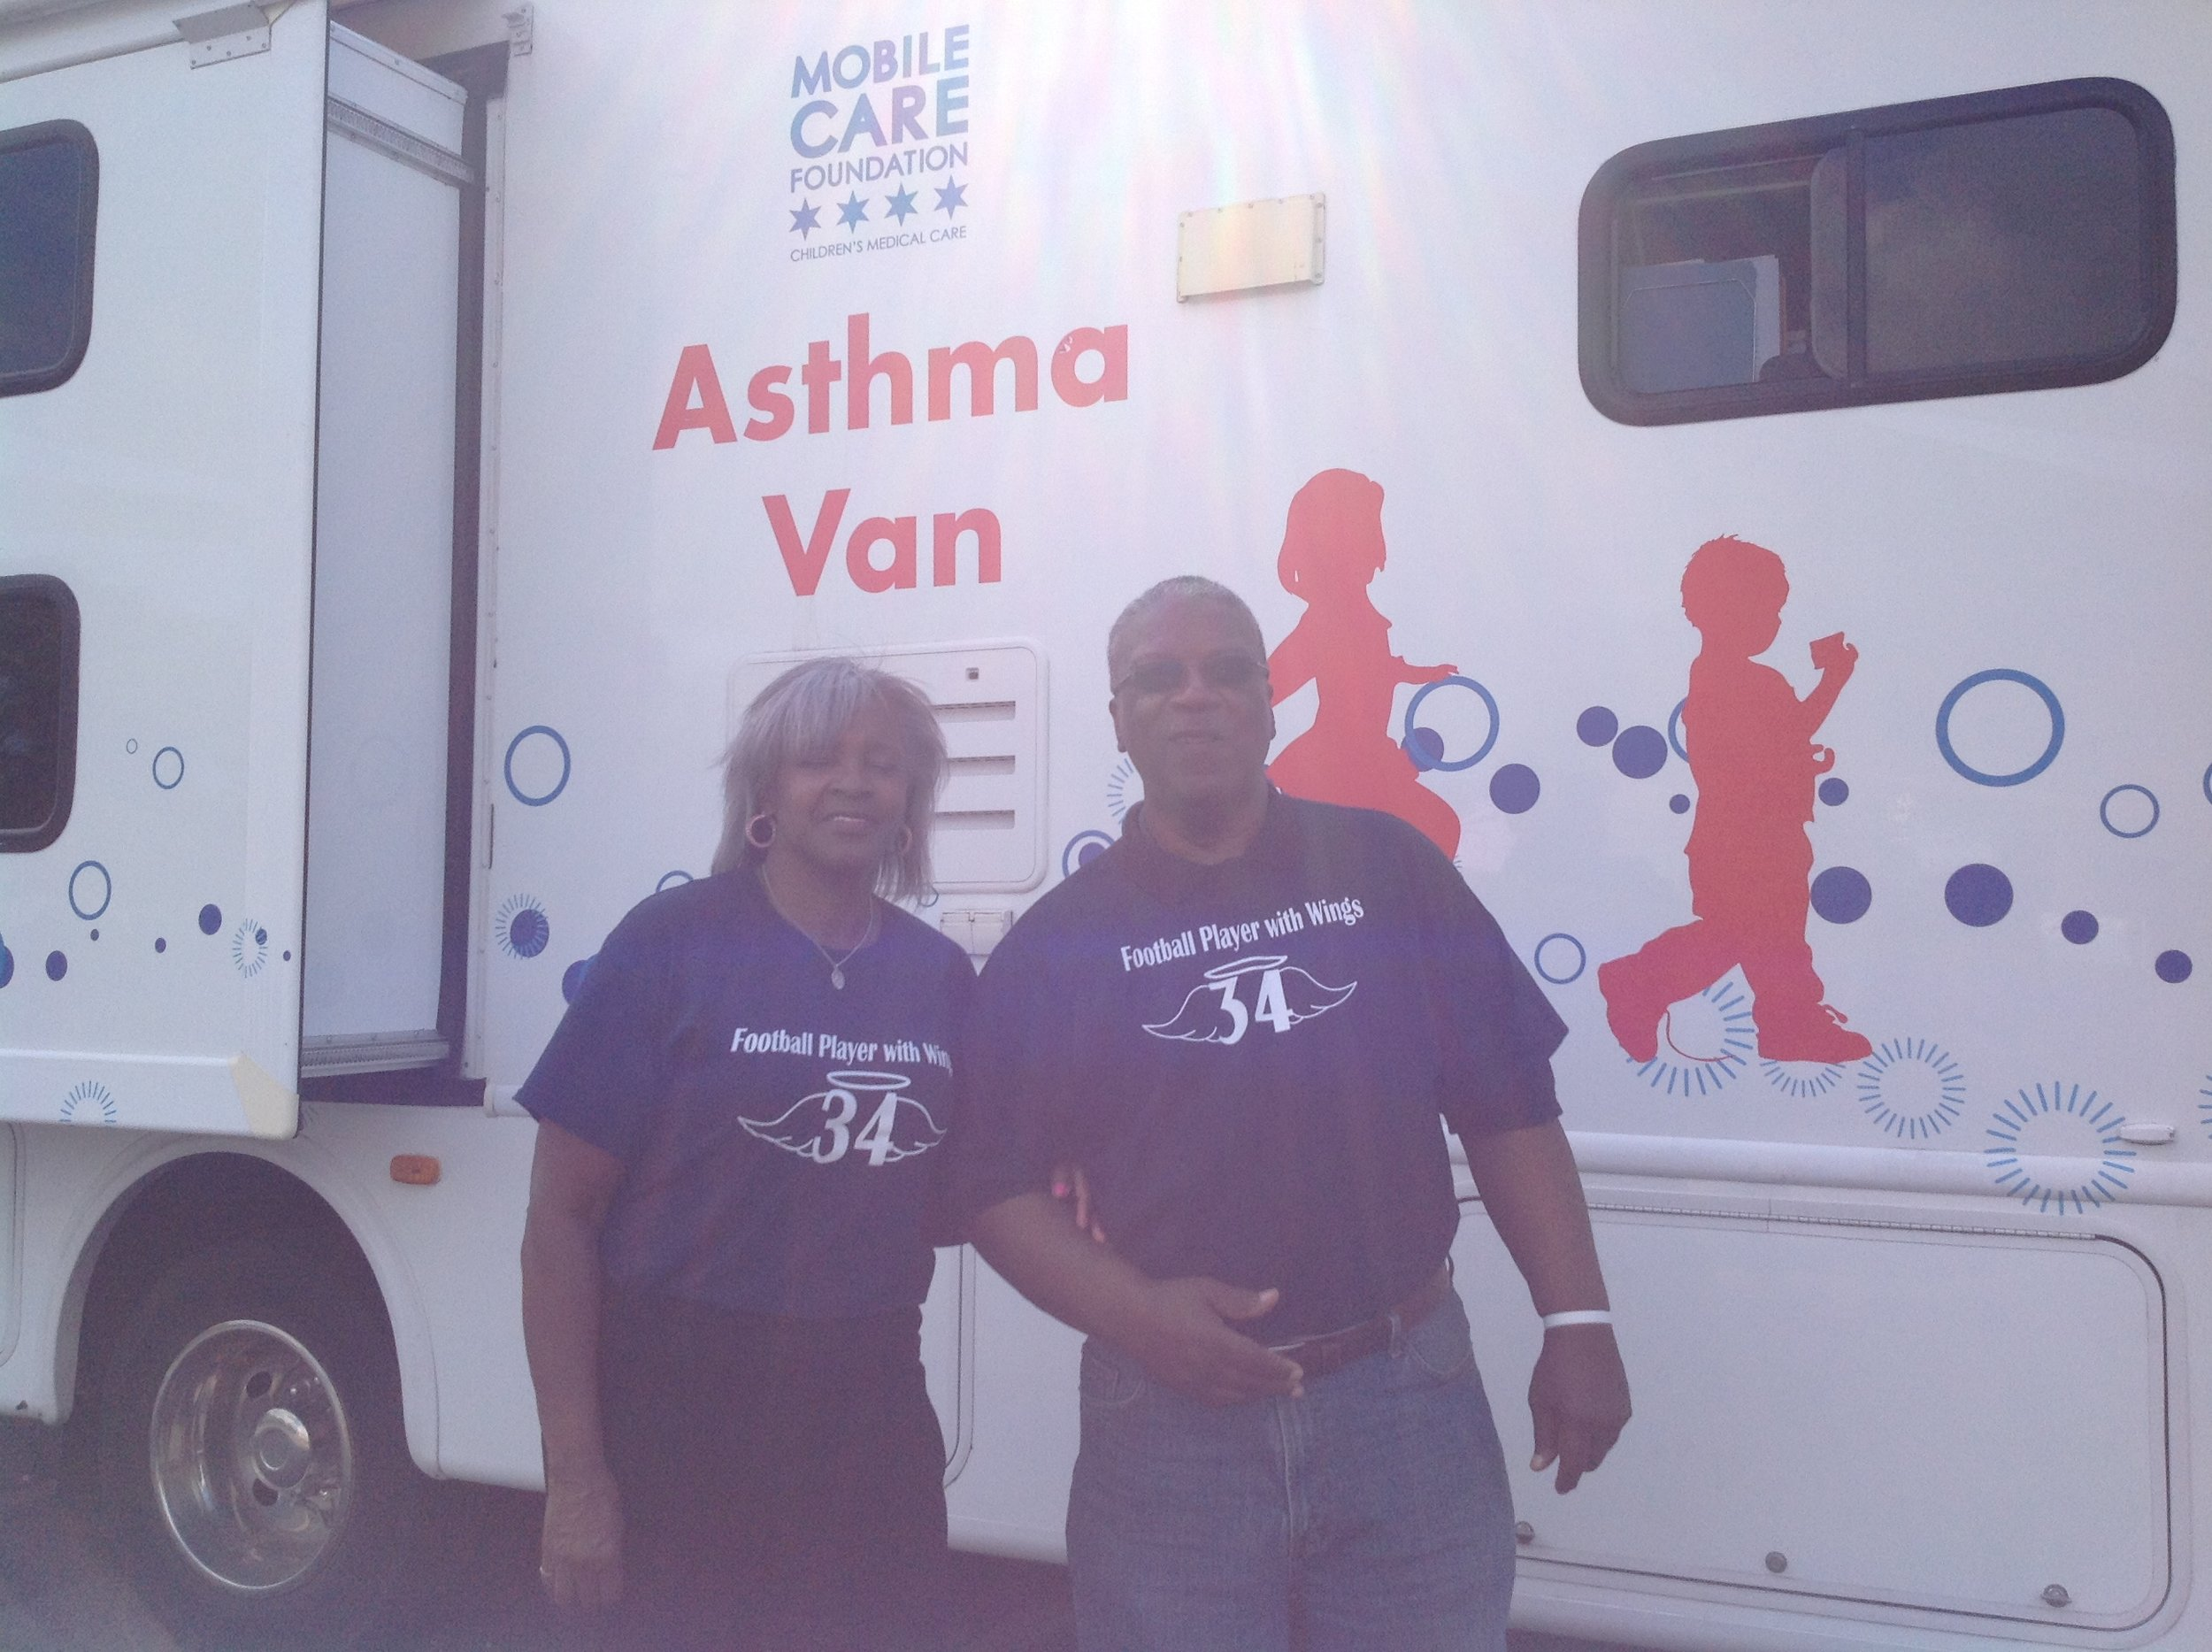 CDR Youth Asthma Foundation partnered with MobileCare Chicago Asthma Van to provide asthma management education and screenings at the AKArama Foundation Back to School Health Fair.